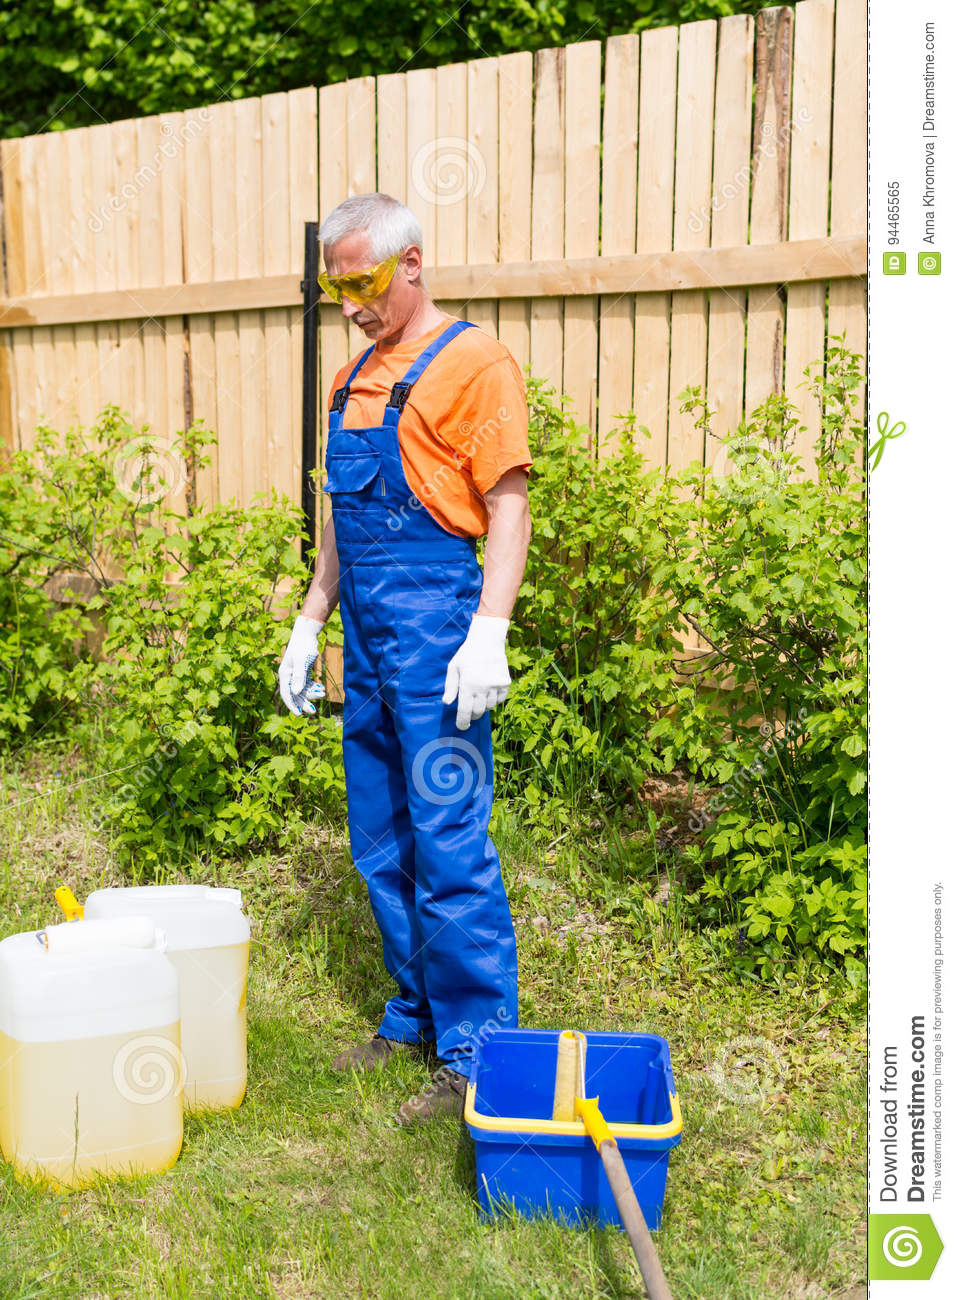 Craftsman In Blue And Orange Uniform Looking At Paint Cans And Bucket In The Garden Stock Image Image Of Equipment Baseball 94465565